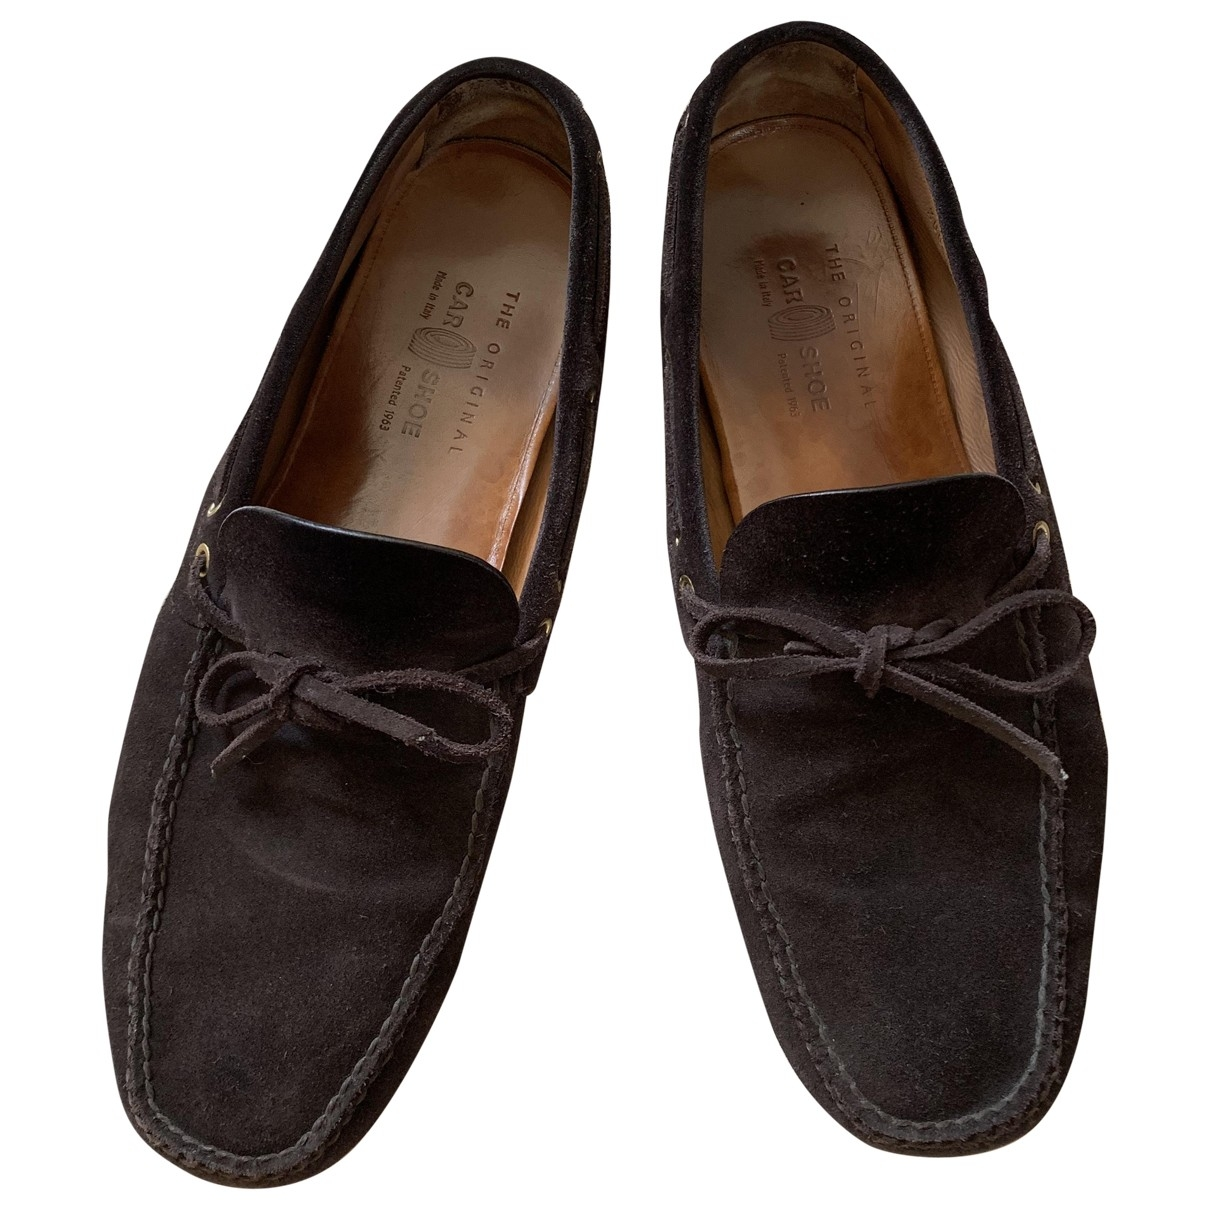 Carshoe \N Brown Suede Flats for Men 11 UK